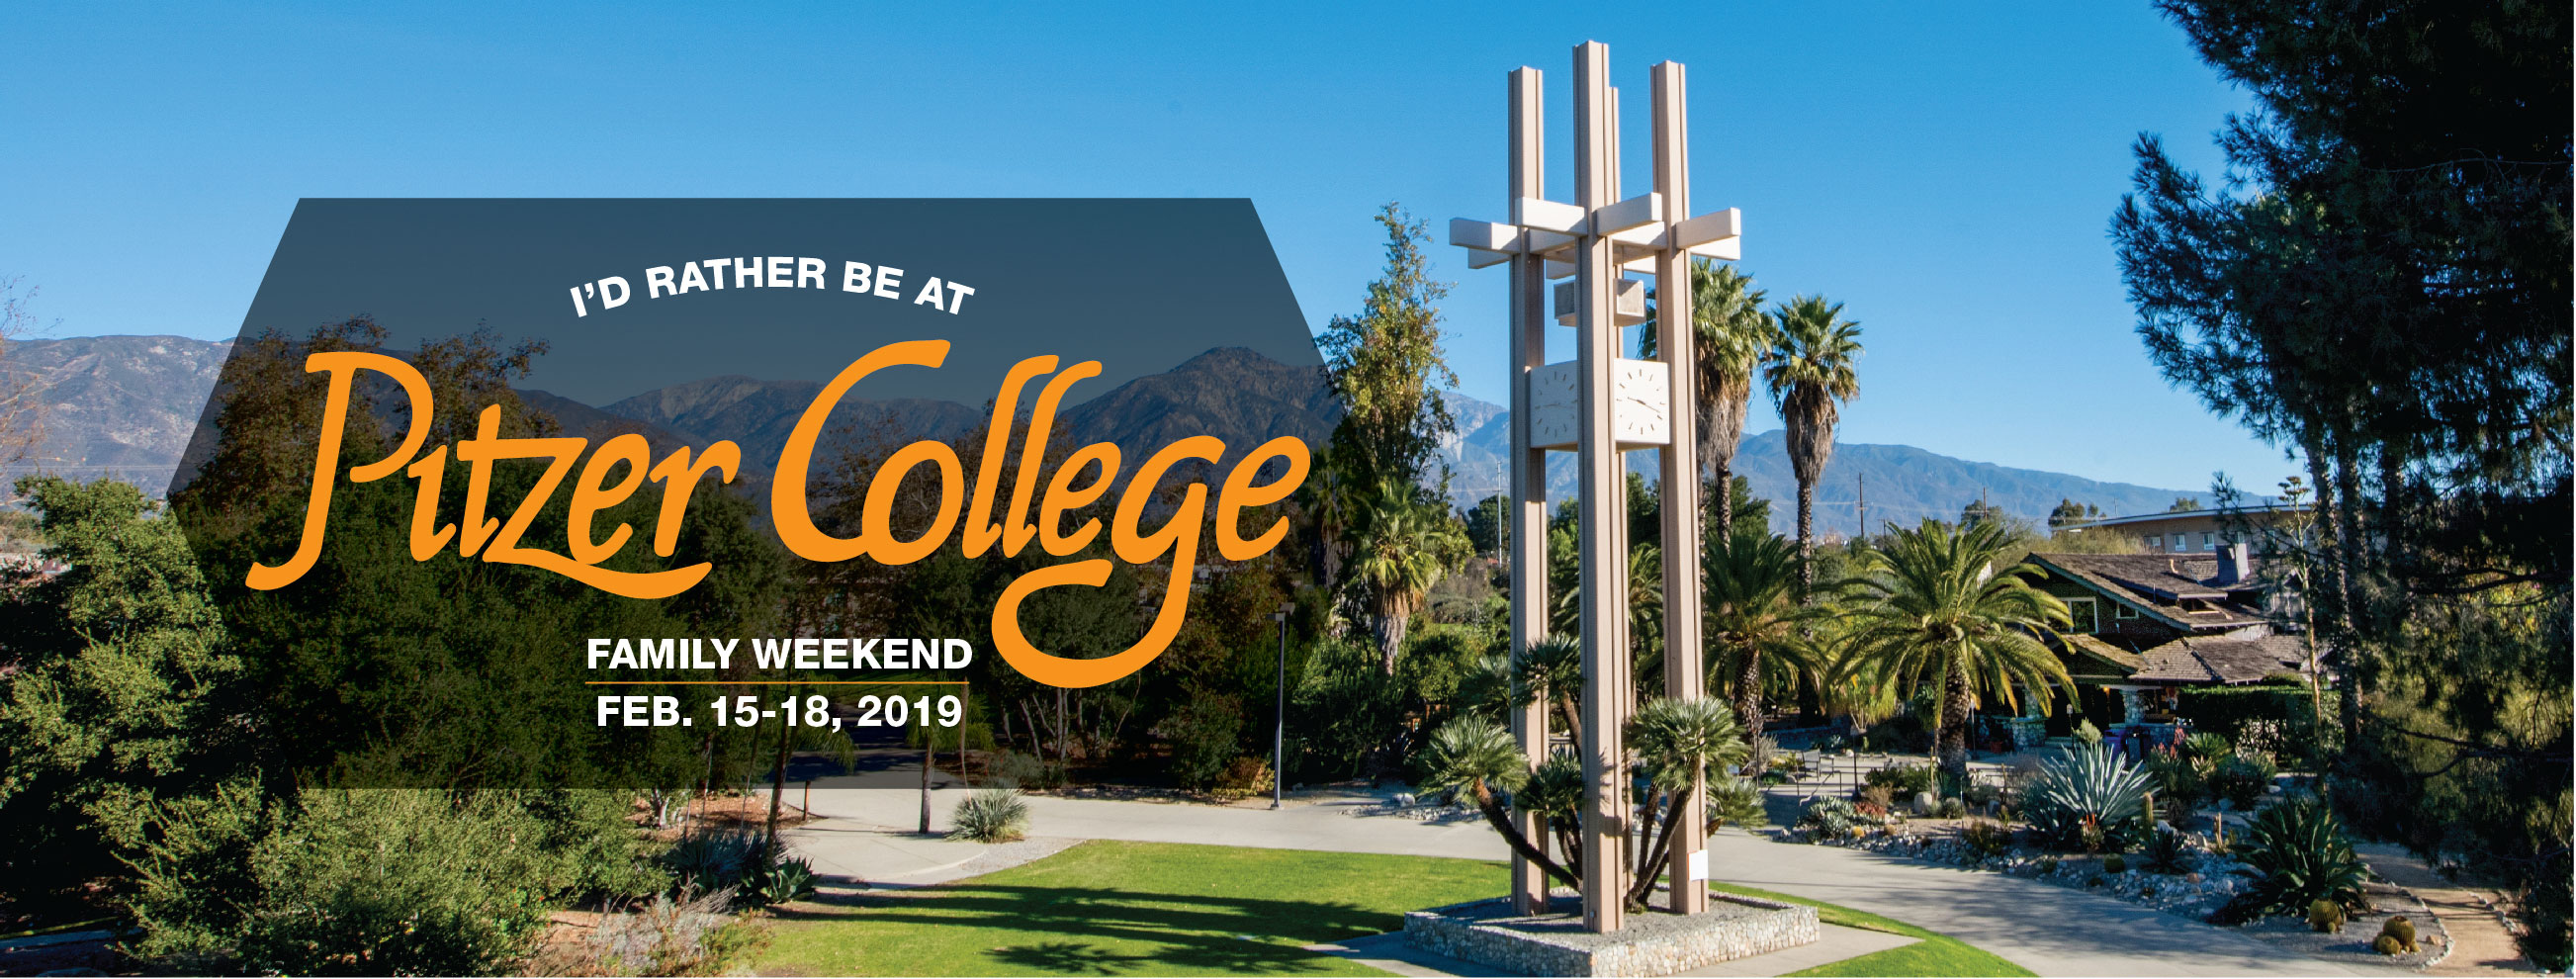 Pitzer College Family Weekend